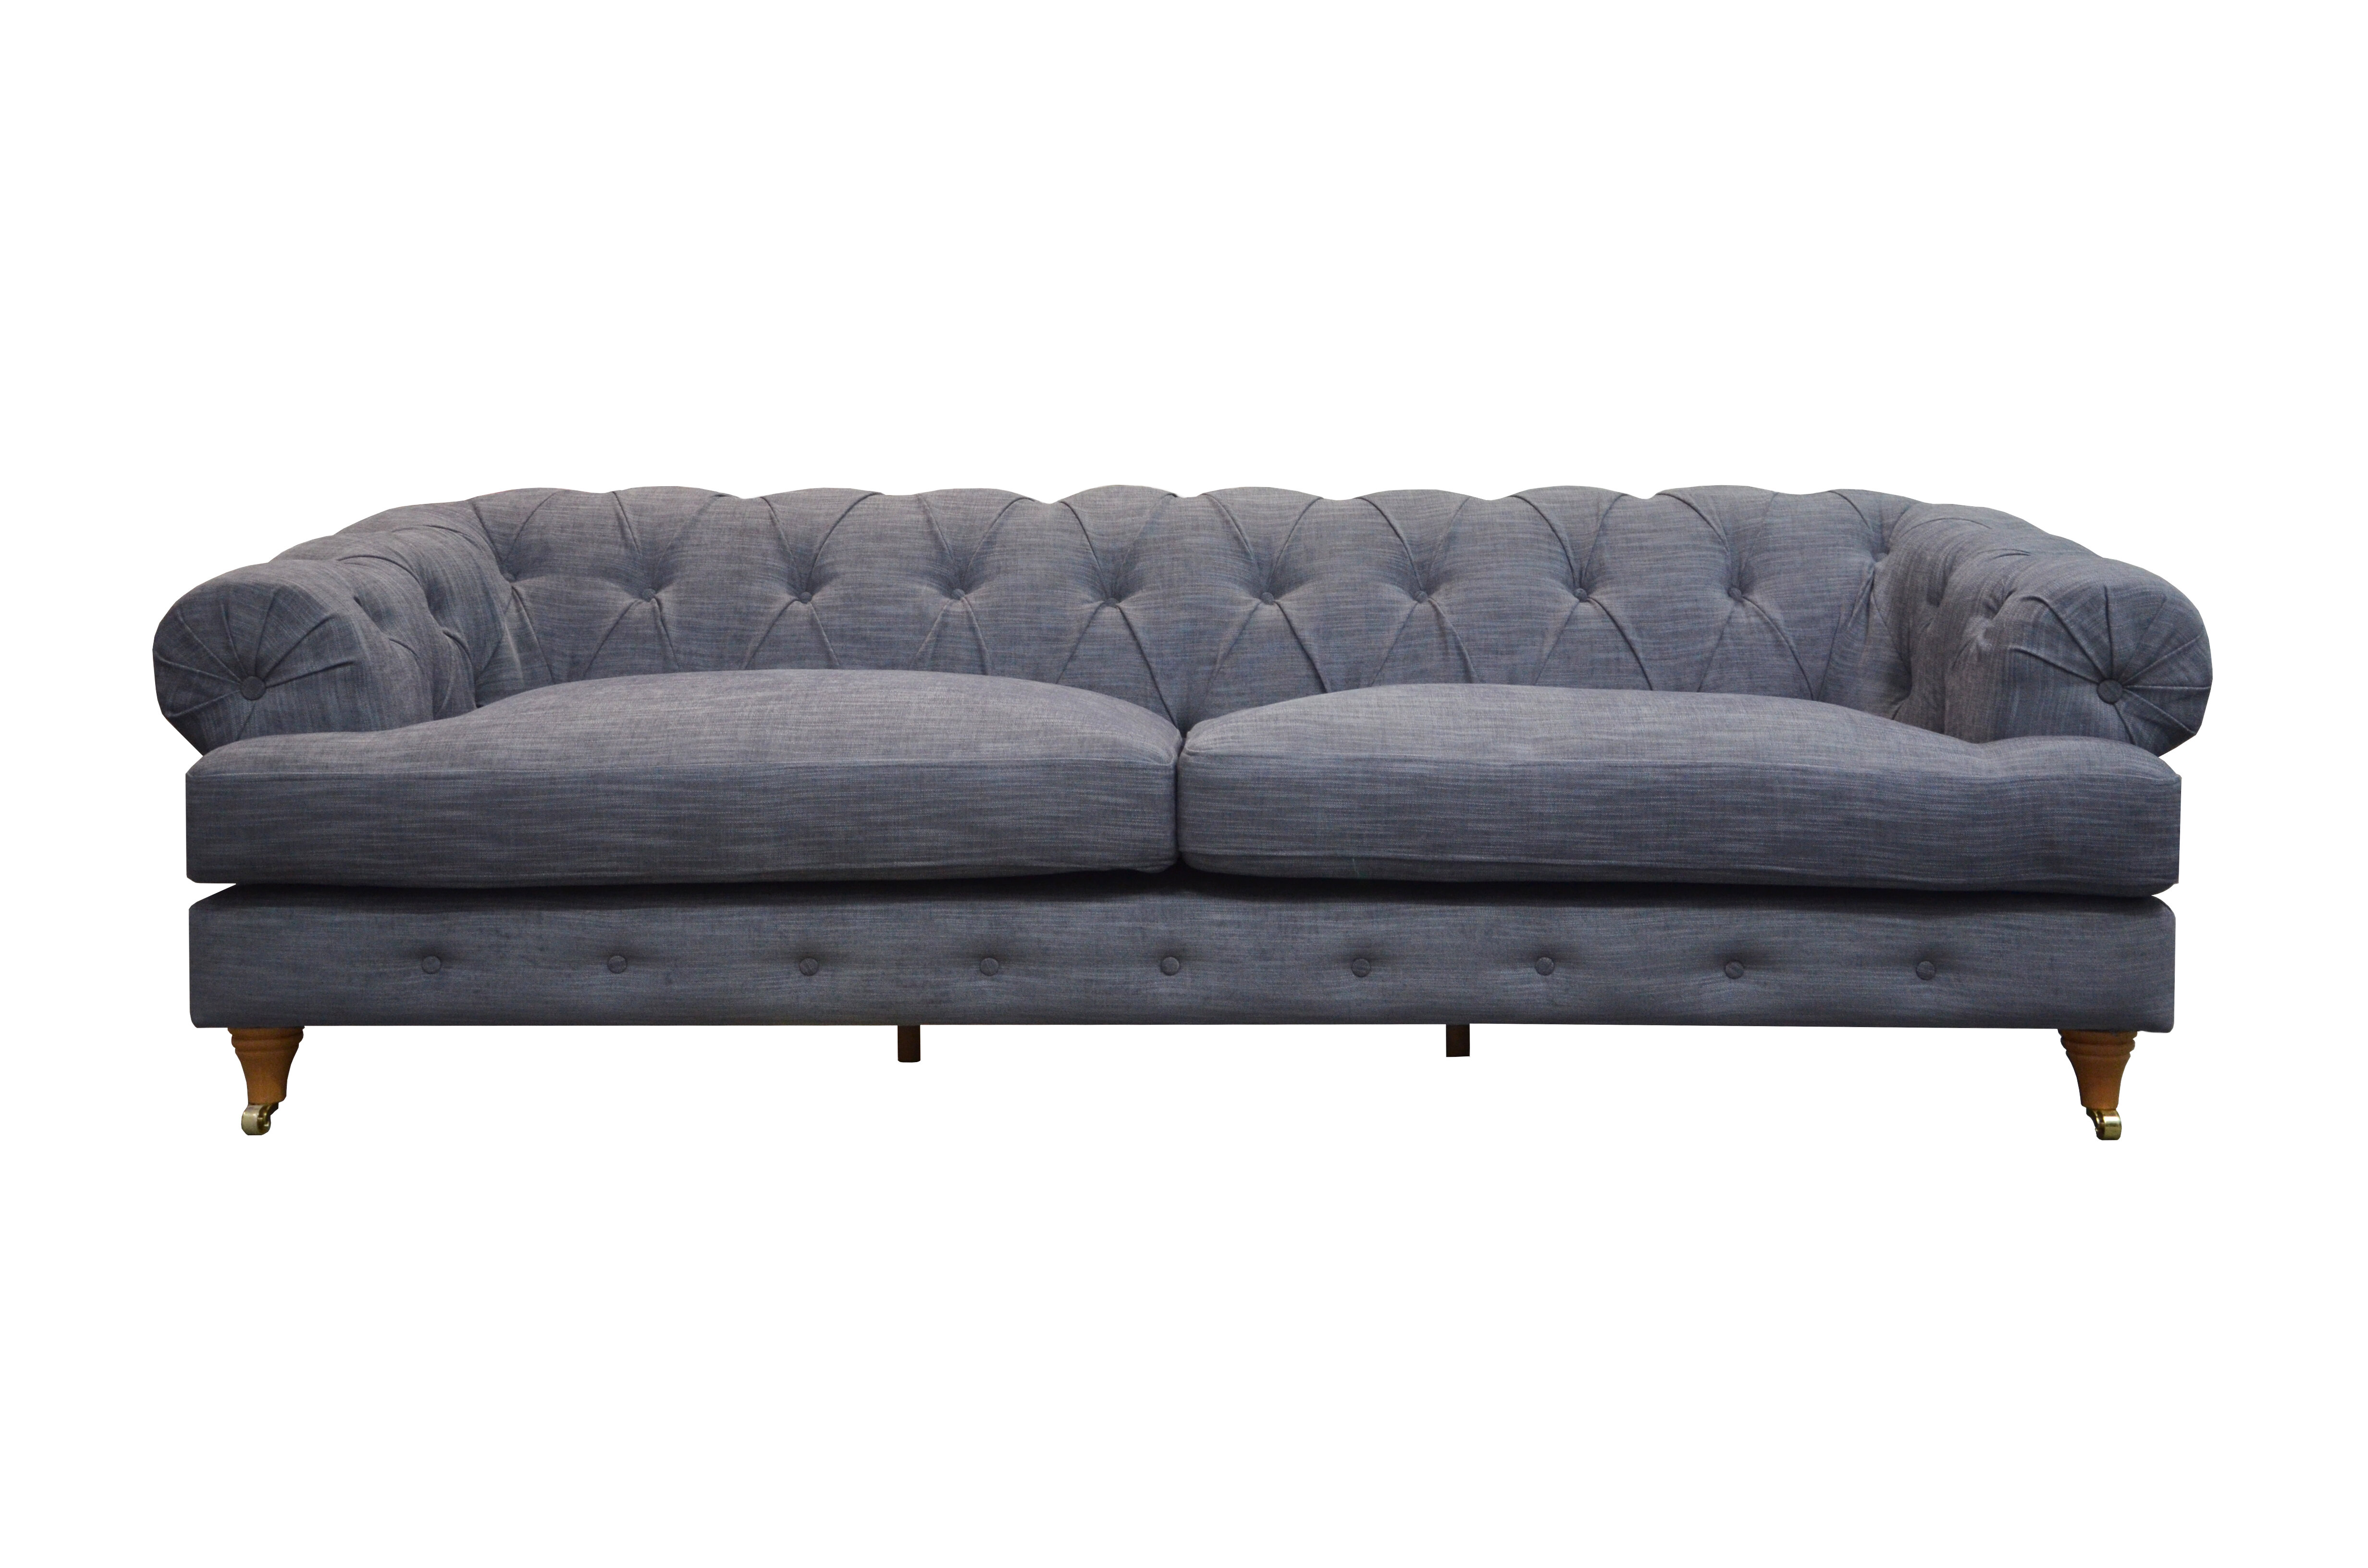 Etagenbett Wayfair : Marlow home co. sofa calvert wayfair.de